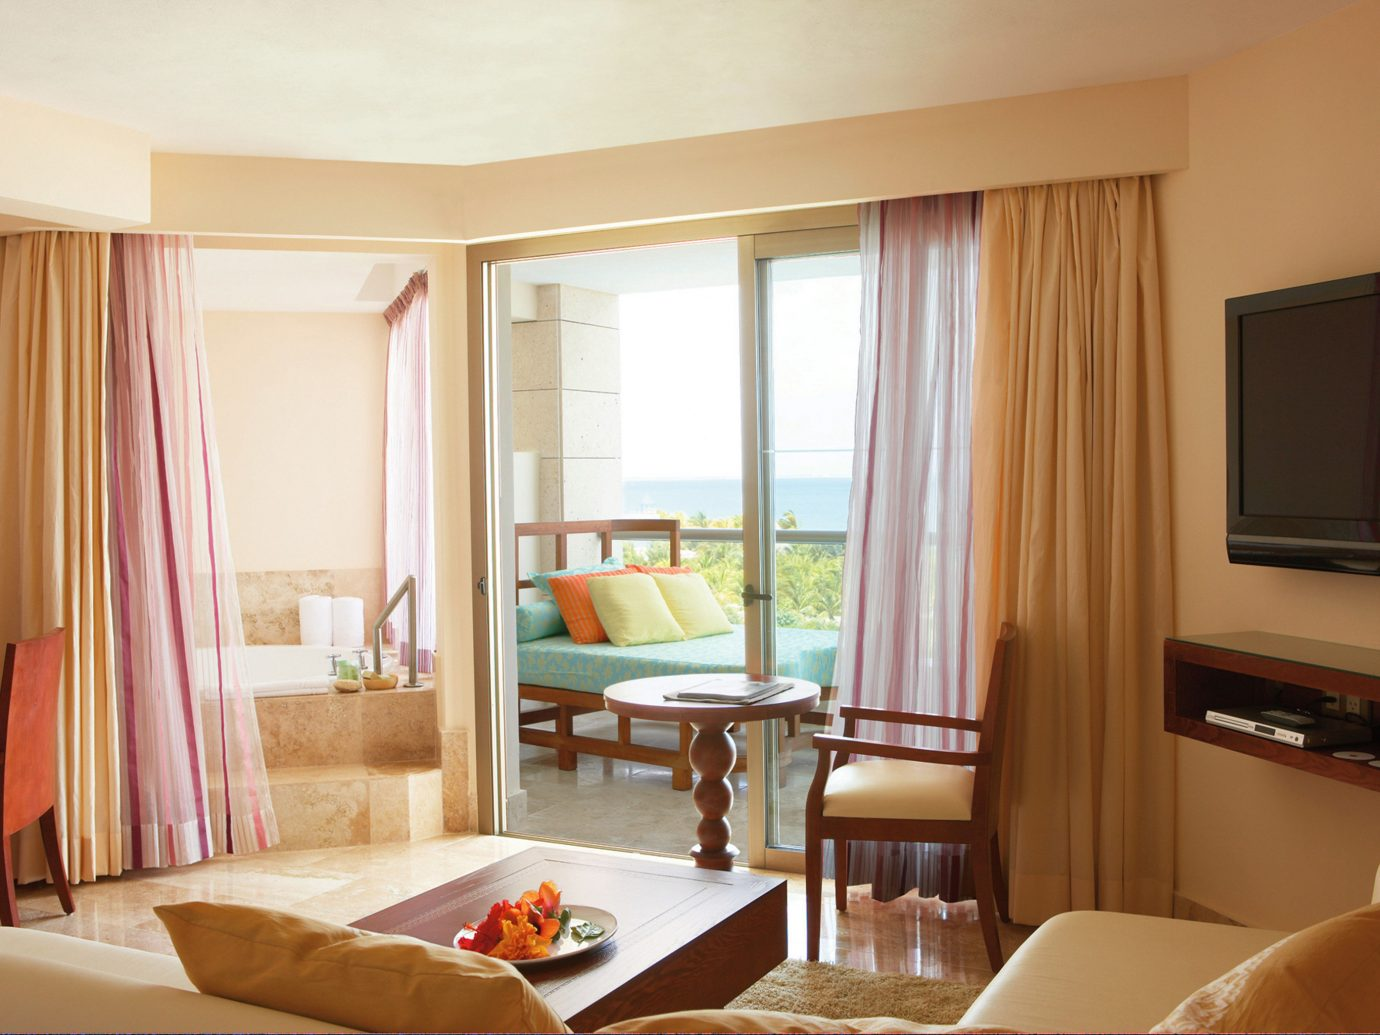 Playa Mujeres Suite In Cancun - All Inclusive Adults Only Resort